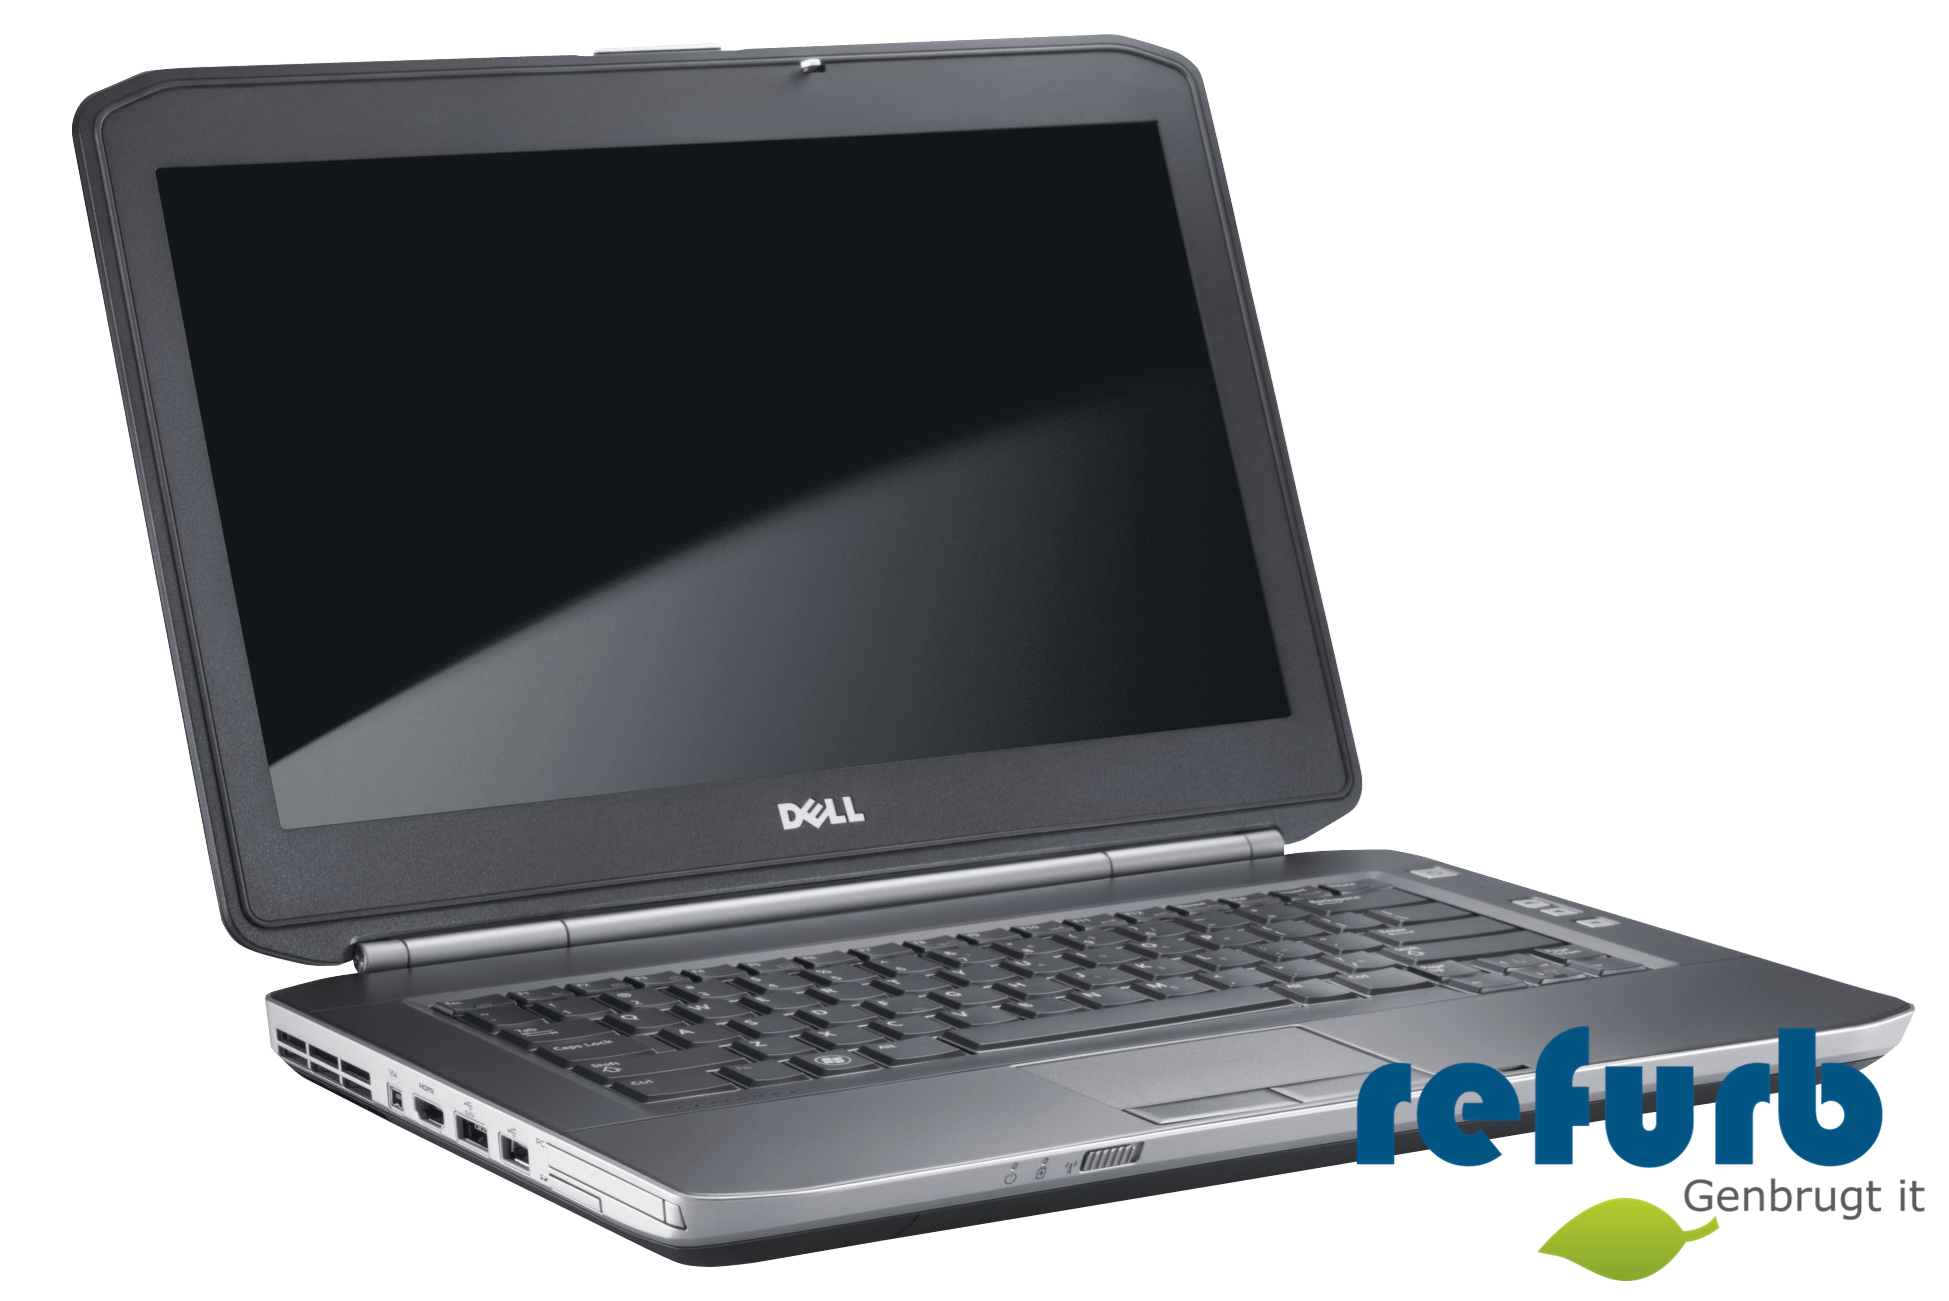 Dell – Dell latitude e6420 på refurb